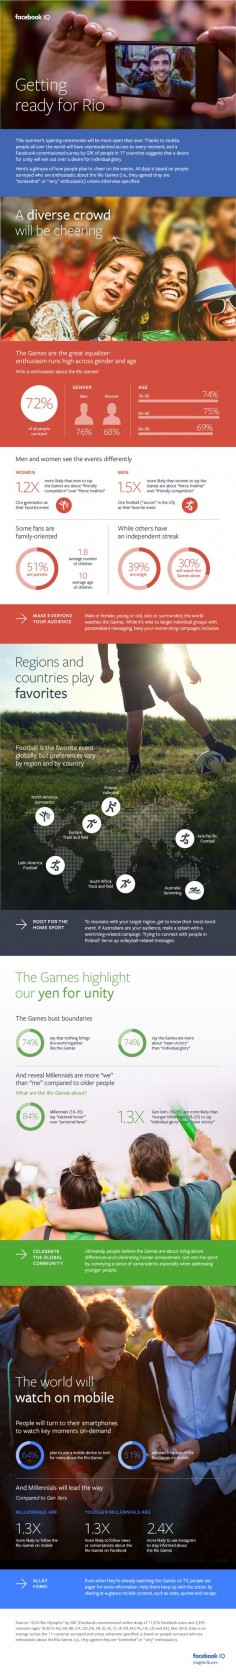 Facebook_IQ_Rio_Games_Infographic